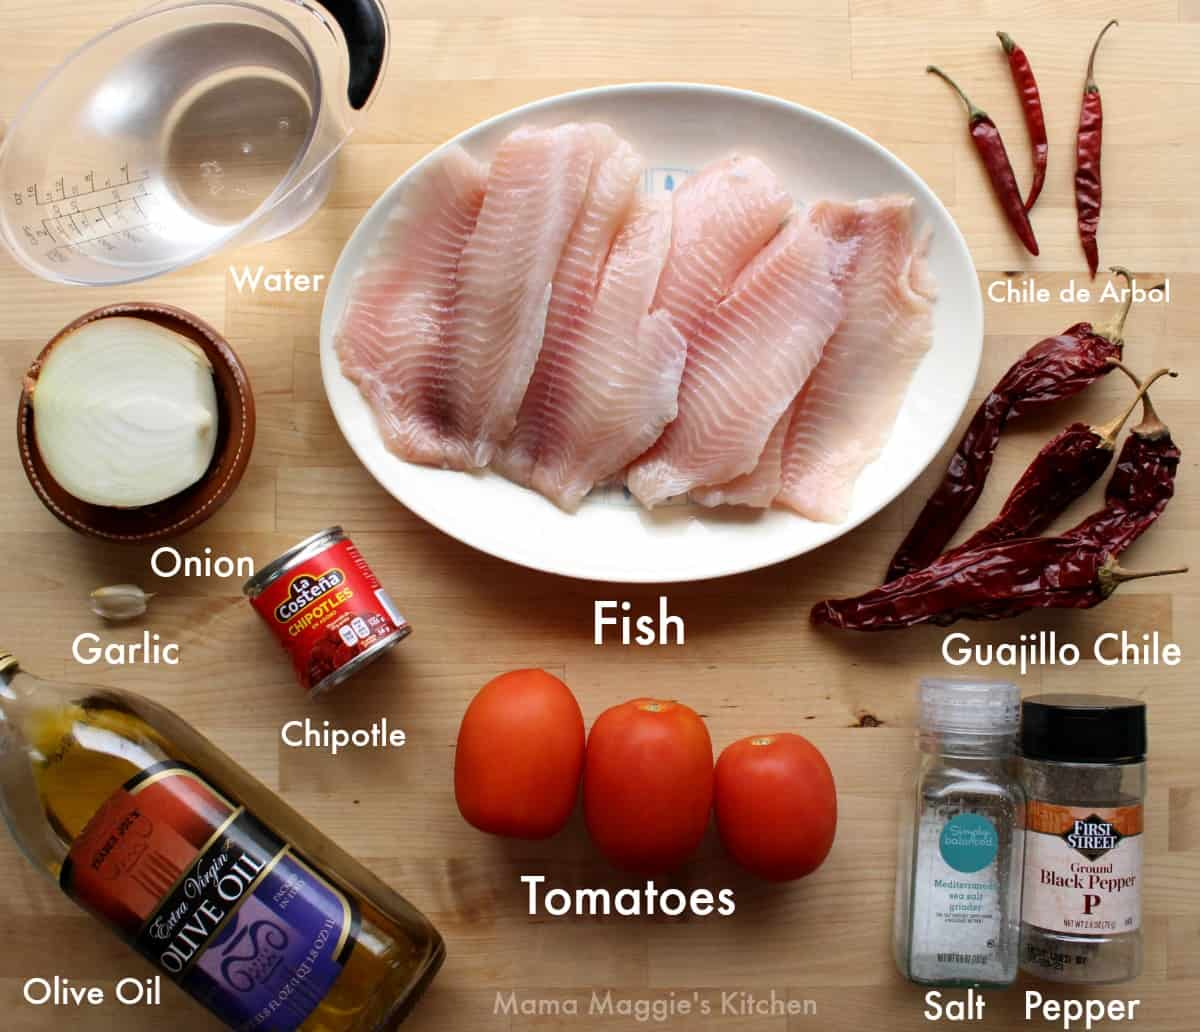 "The ingredients to make Pescado a la Diabla branded and on a wooden surface. ""Width ="" 1200 ""height ="" 1032 ""class ="" lazy lazy hidden alignnone size-full wp-image-17733 ""srcset ="" ""srcset ="" https://inmamamaggieskitchen.com/wp-content/uploads/2020/ 03 / Ingredients-Pescado-Diablo.jpg 1200w, https://inmamamaggieskitchen.com/wp-content/uploads/2020/03/Ingredients-Pescado-Diablo -300x258.jpg 300w, https://inmamamaggieskitchen.com/wp- content / uploads / 2020/03 / Ingredients-Pescado-Diablo-1024x881.jpg 1024w, https://inmamamaggieskitchen.com/wp-content/uploads/2020/03/Ingredients-Pescado-Diablo-768x660.jpg 768w, https: //inmamamaggieskitchen.com/wp-content/uploads/2020/03/Ingredients-Pescado-Diablo-735x632.jpg 735w ""sizes ="" (max width: 1200px) 100vw, 1200px"